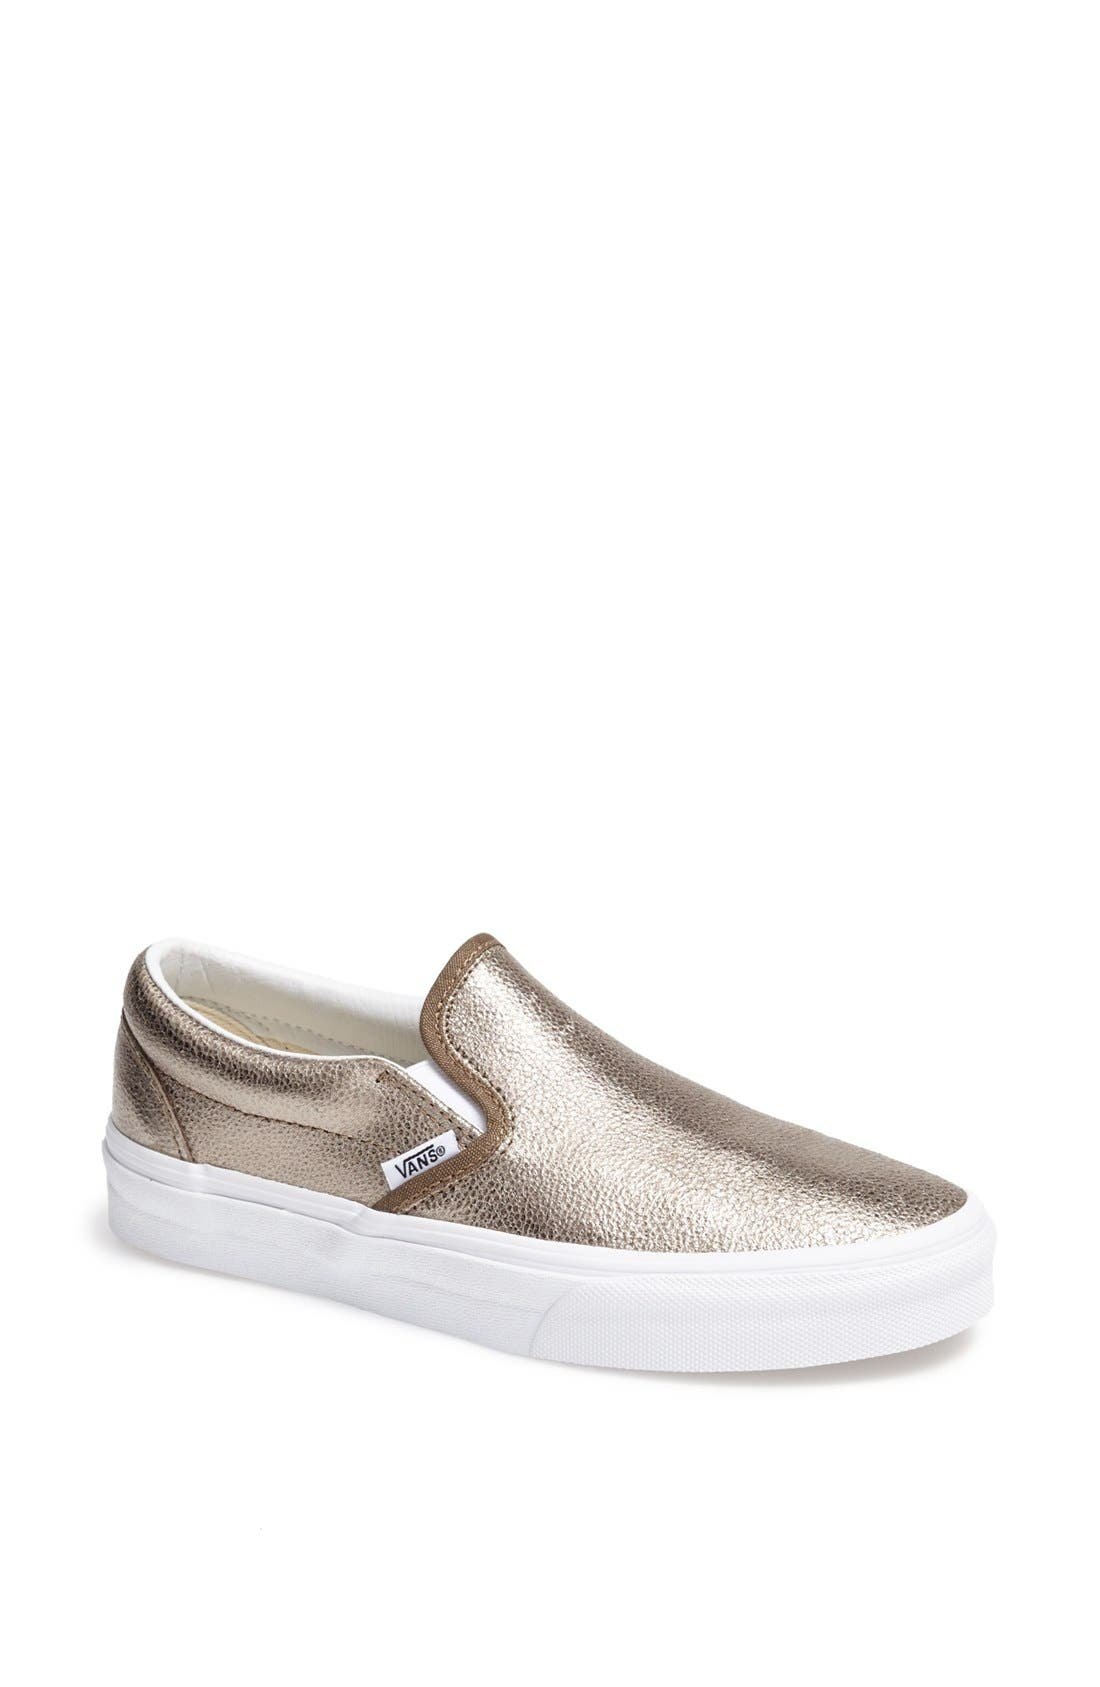 Alternate Image 1 Selected - Vans Metallic Slip-On Sneaker (Women)